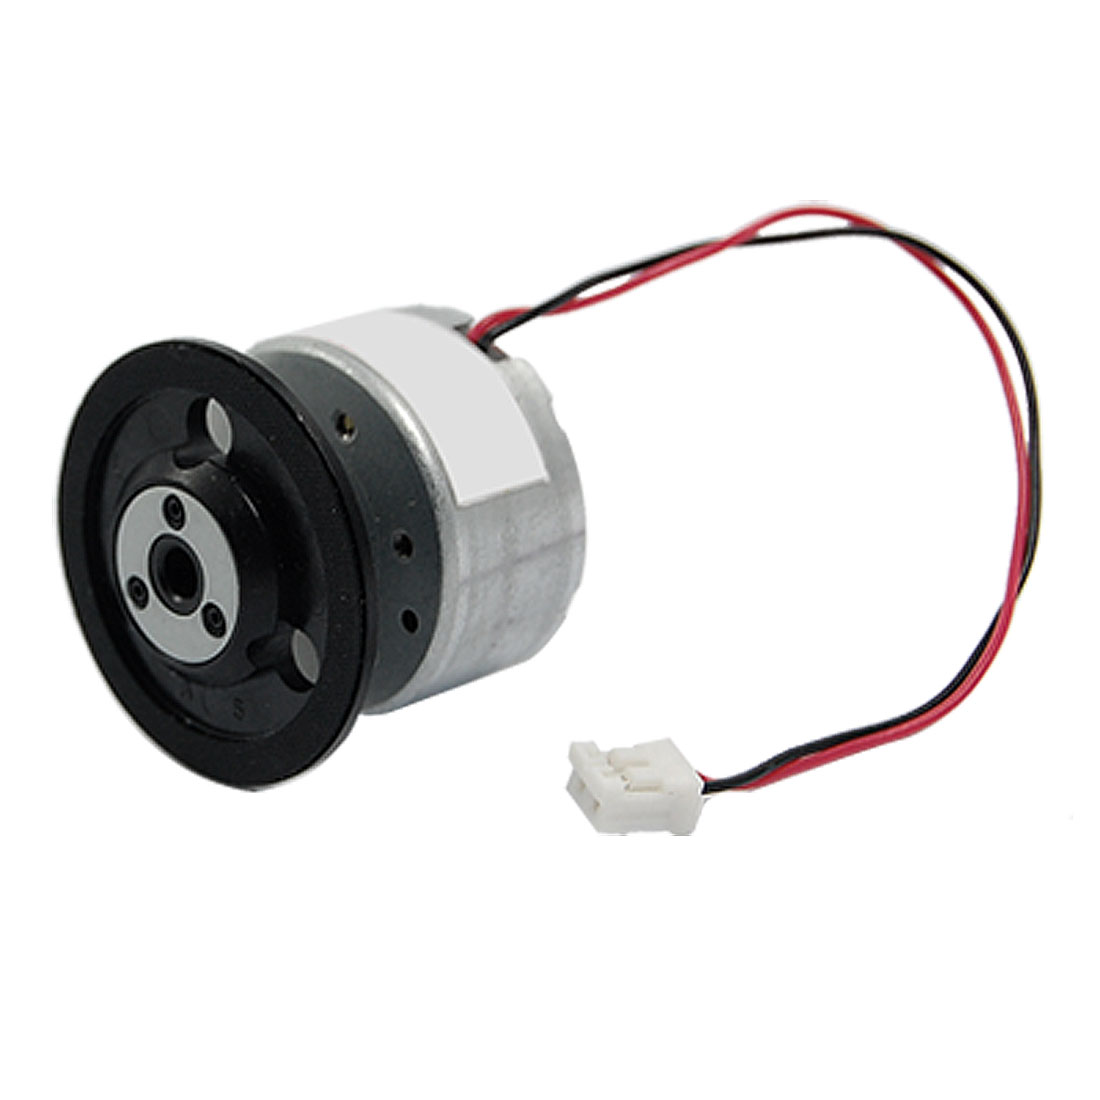 DC 6V 6000RPM Output Speed 0.02A Power Connector DVD Motor